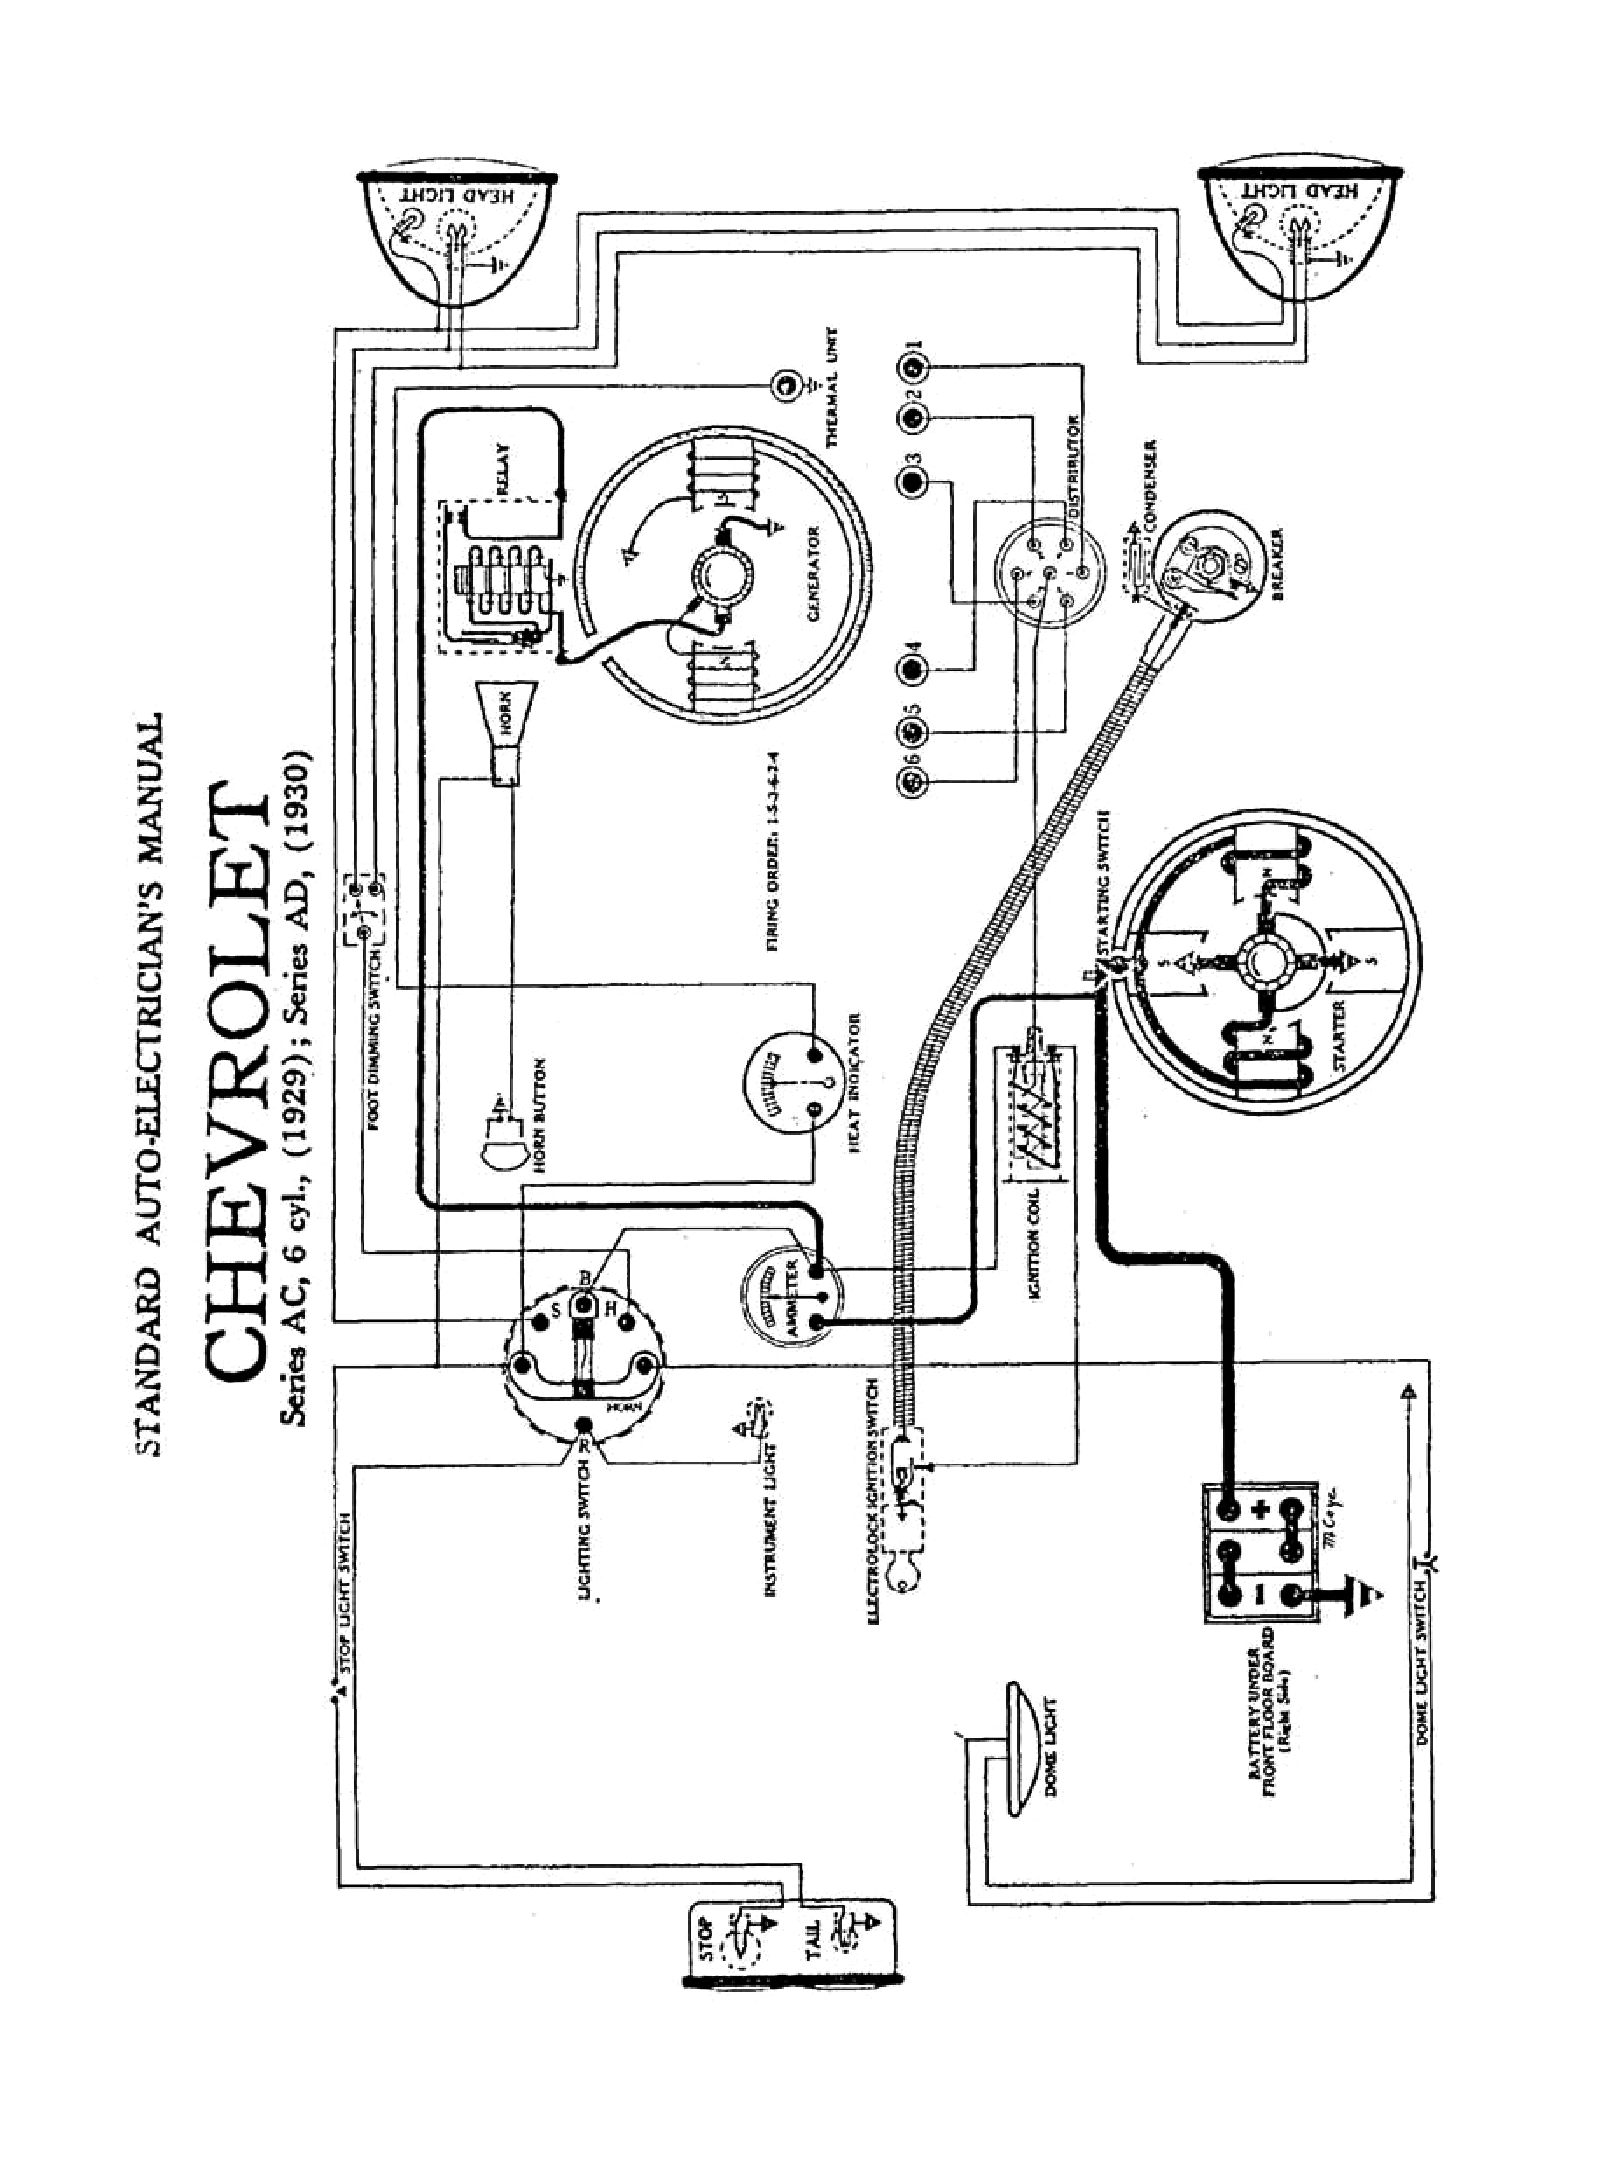 Chevy Wiring Diagrams Diagram For 2006 Lincoln Mark Lt Get Free Image About 1930 Series Ad Model 1931